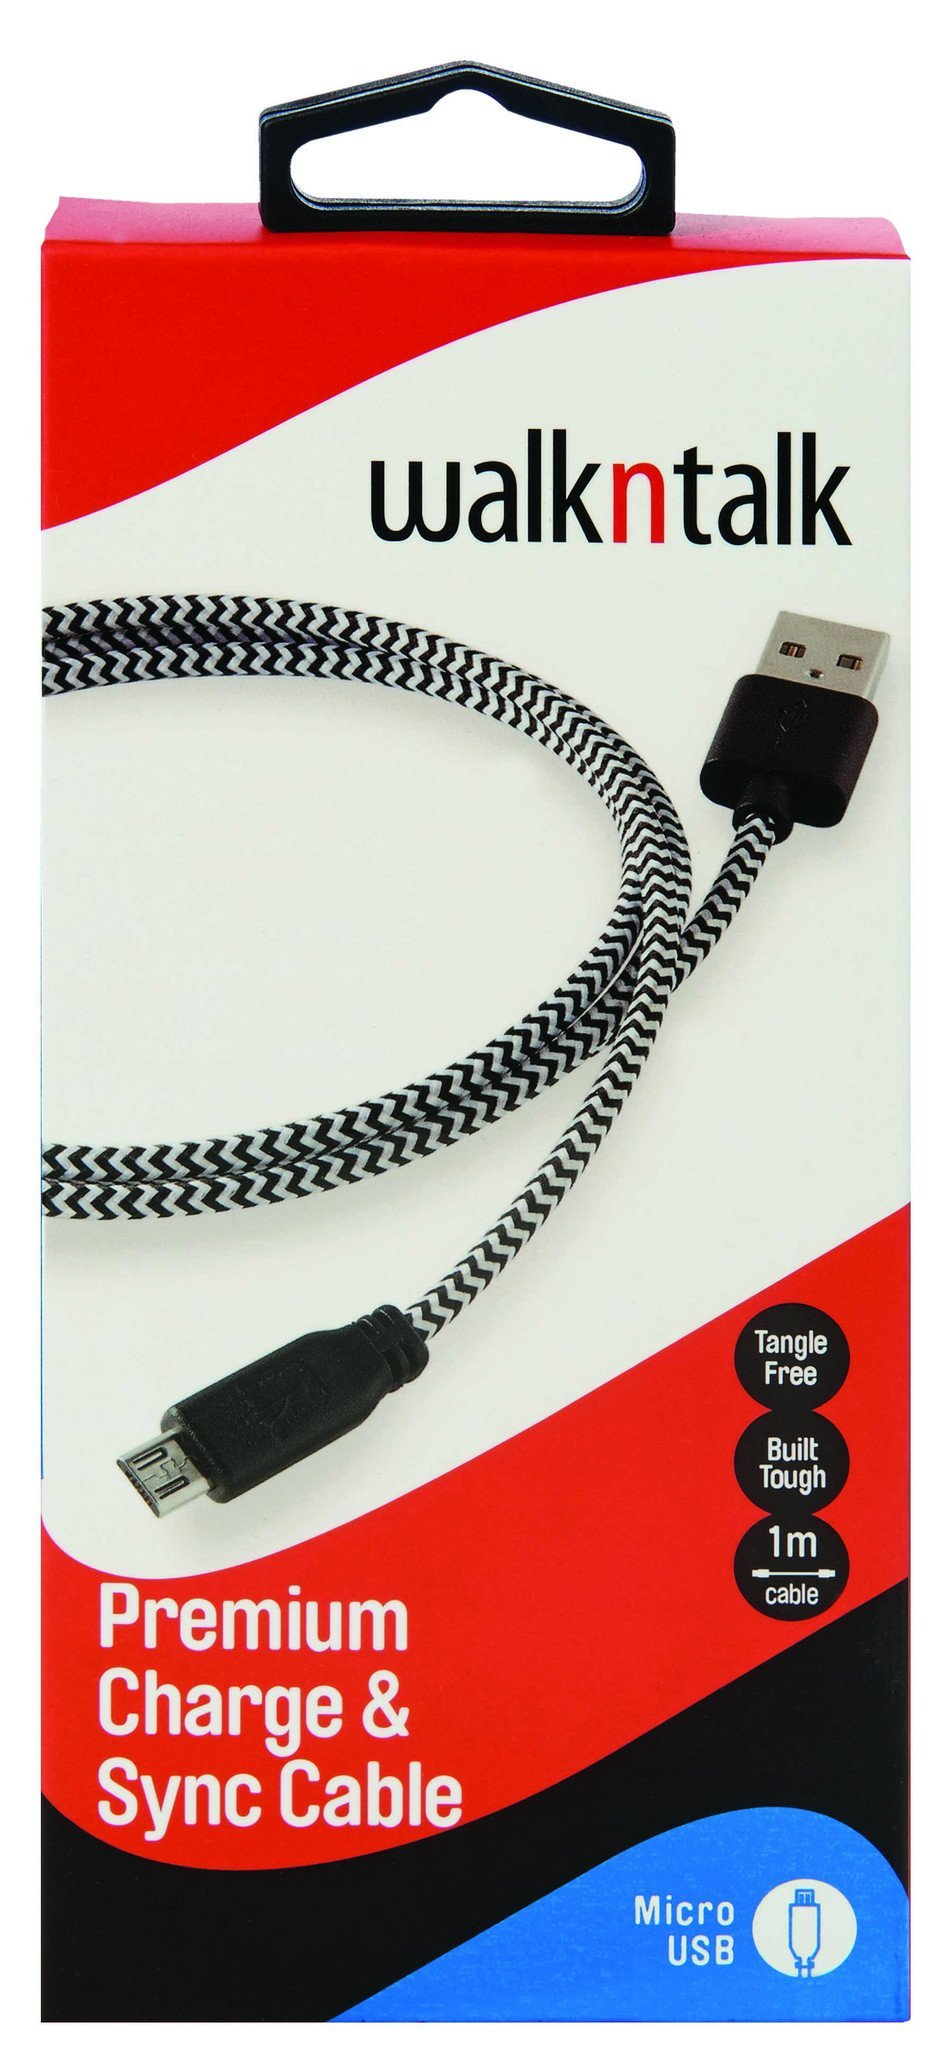 MICRO USB TO USB CABLE 1M - BLACK